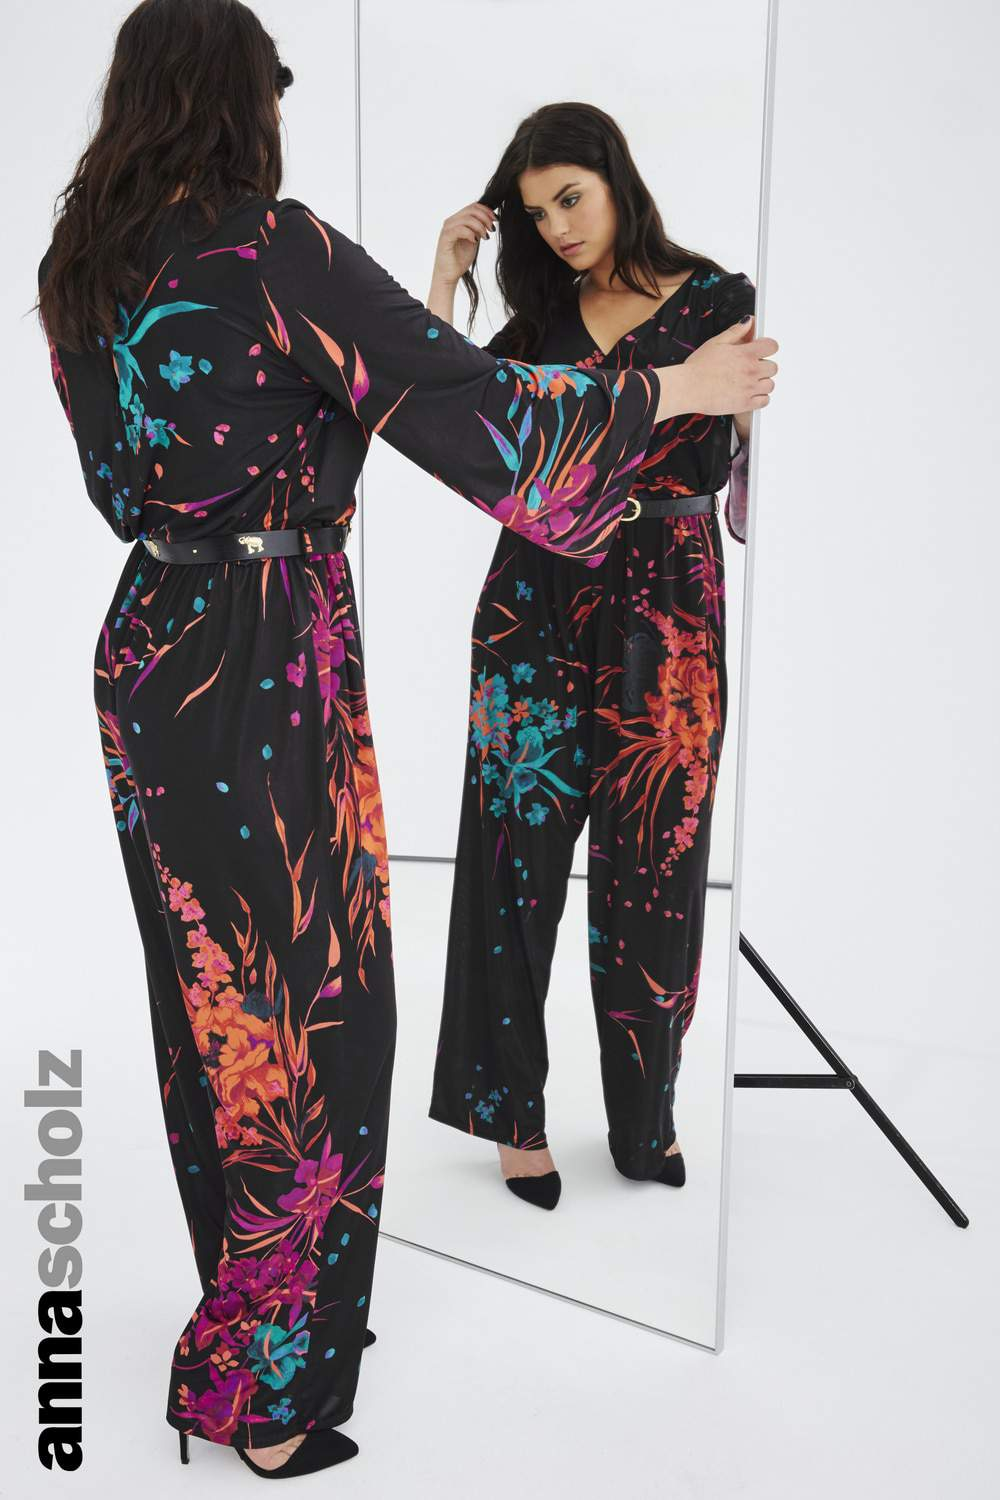 Plus Size Luxury Designer Anna Scholz Fall 2015 Collection on the Curvy Fashionista